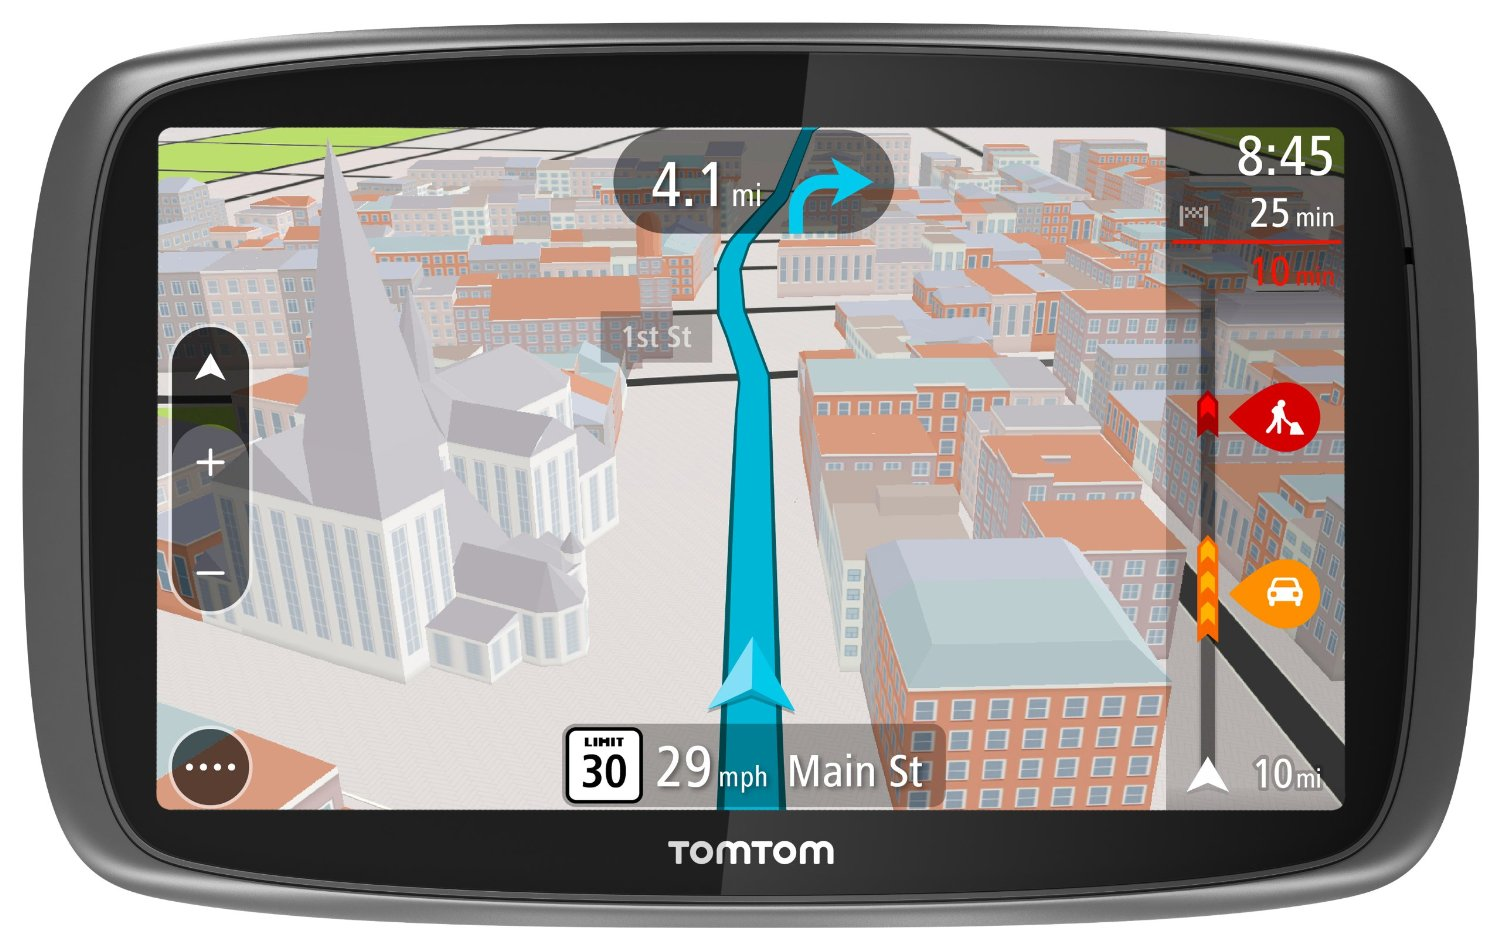 TomTom Go600 Car GPS Review